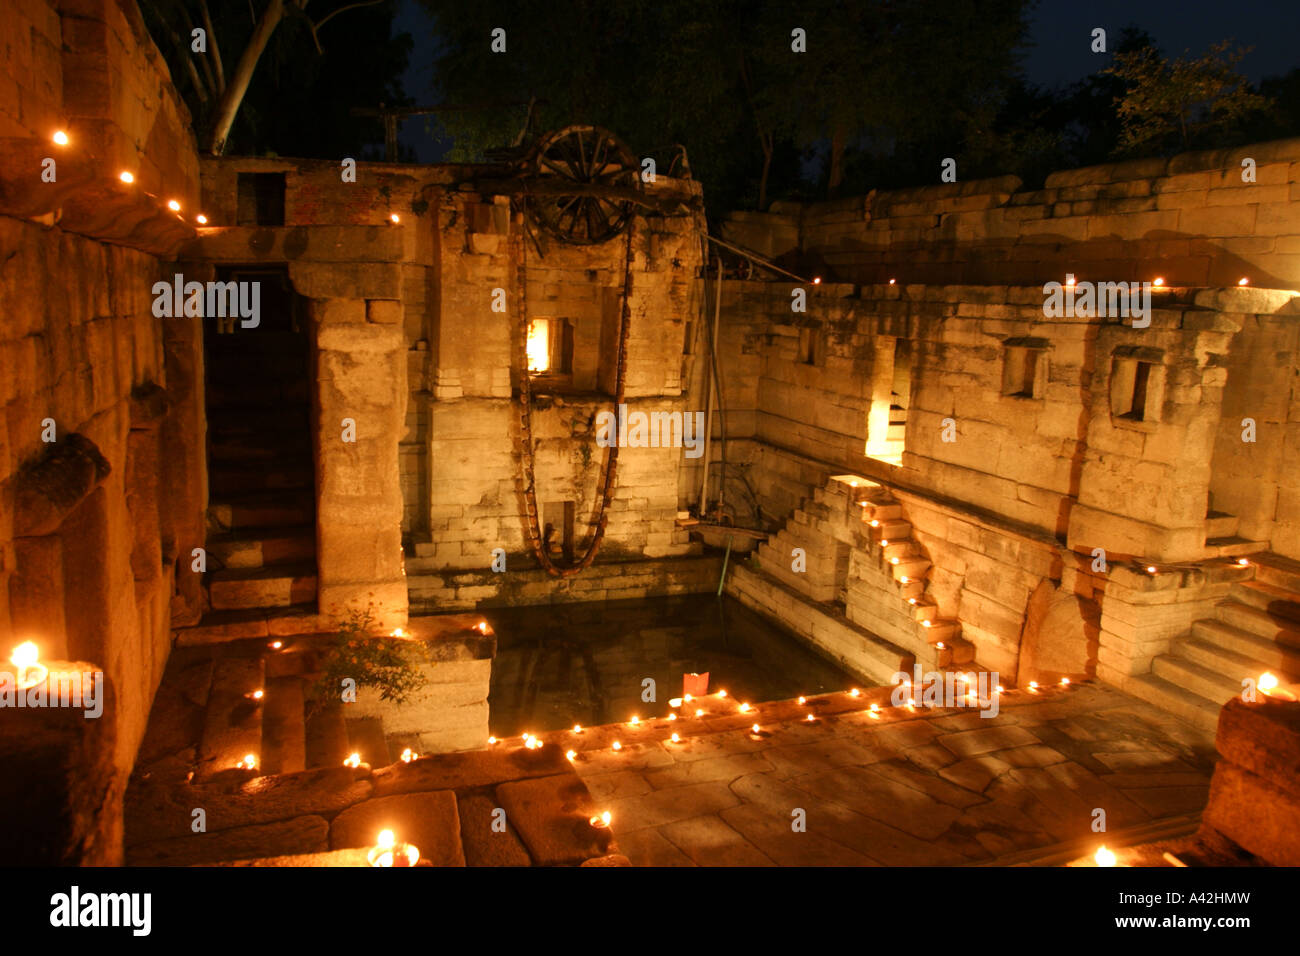 Ancient water well illuminated with oil lamps at Narlae in Rajasthan, India - Stock Image